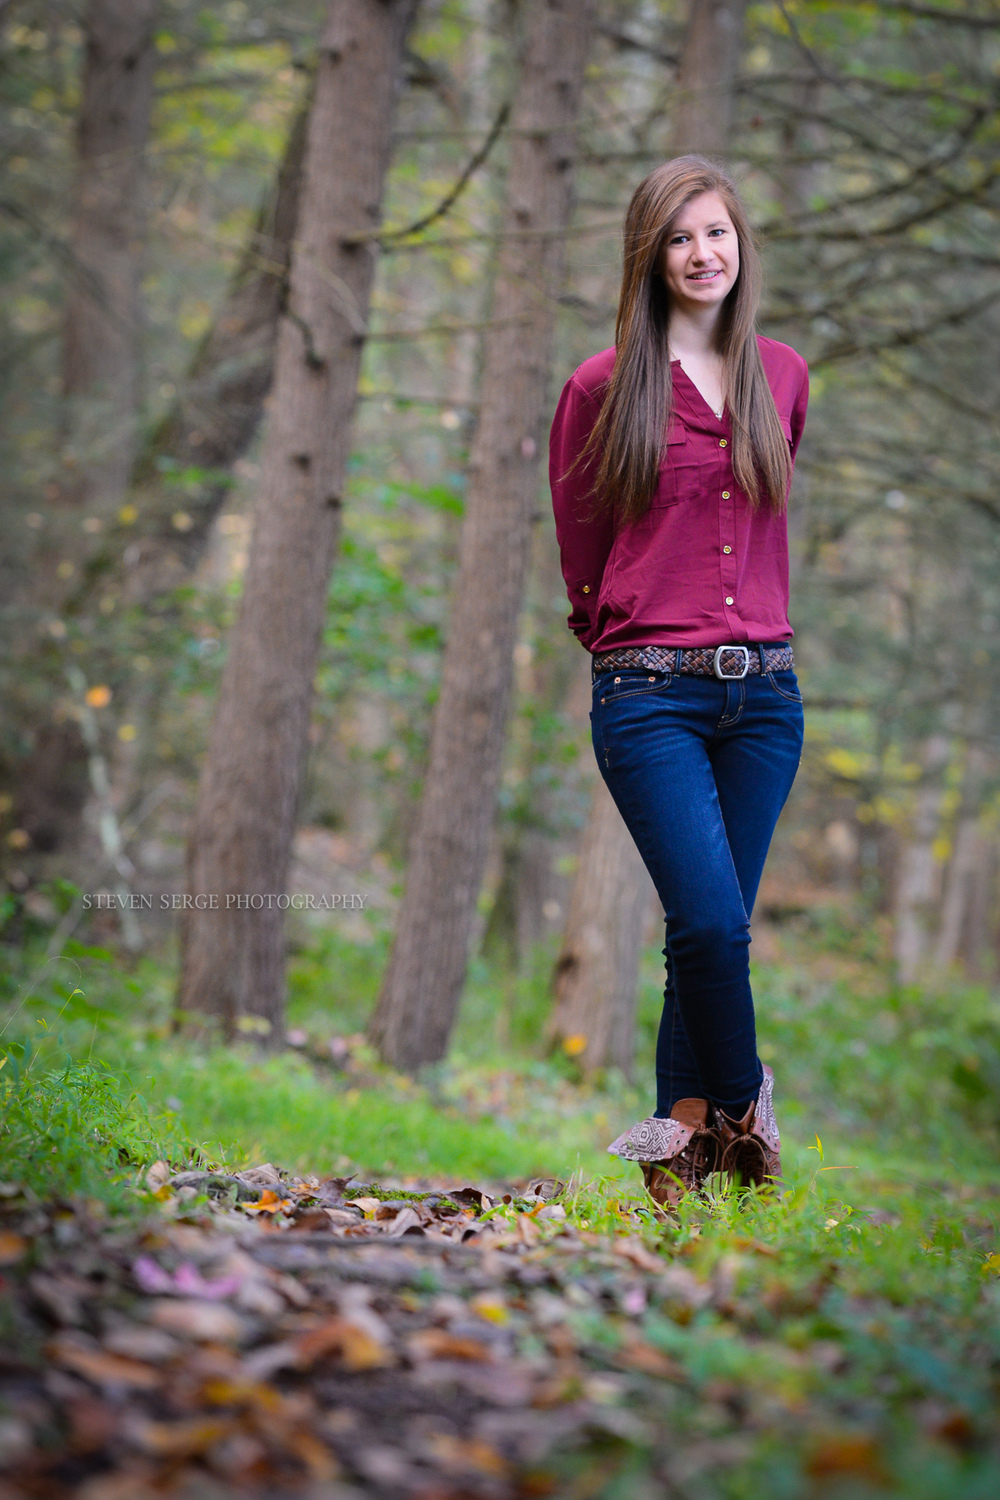 High-School-Prep-Scranton-nepa-senior-portrait-photographer-2.jpg